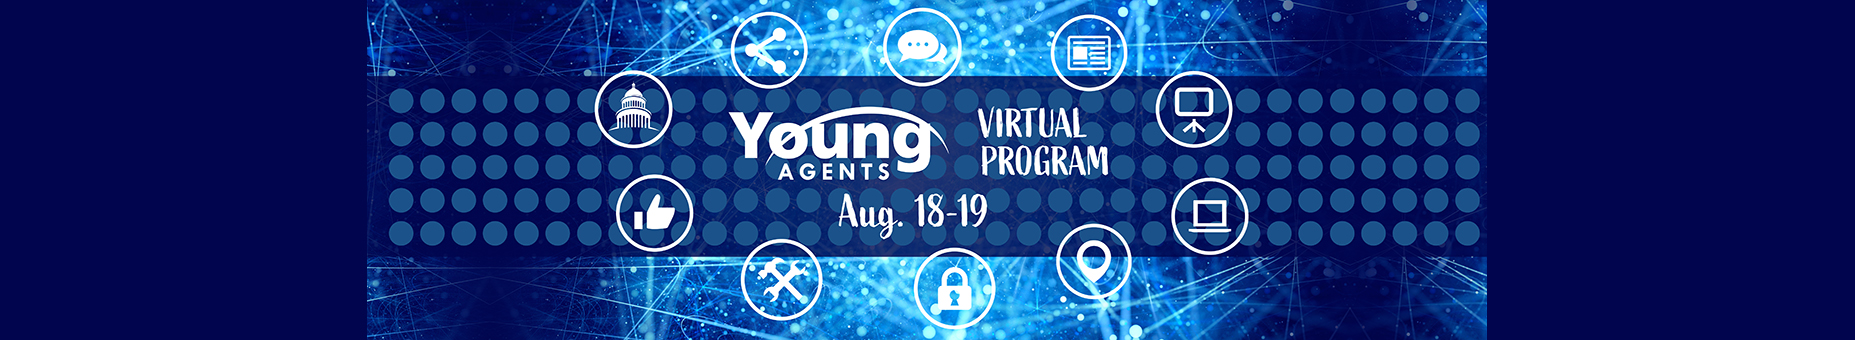 Young Agents Virtual Program - Aug 18-19, 2020